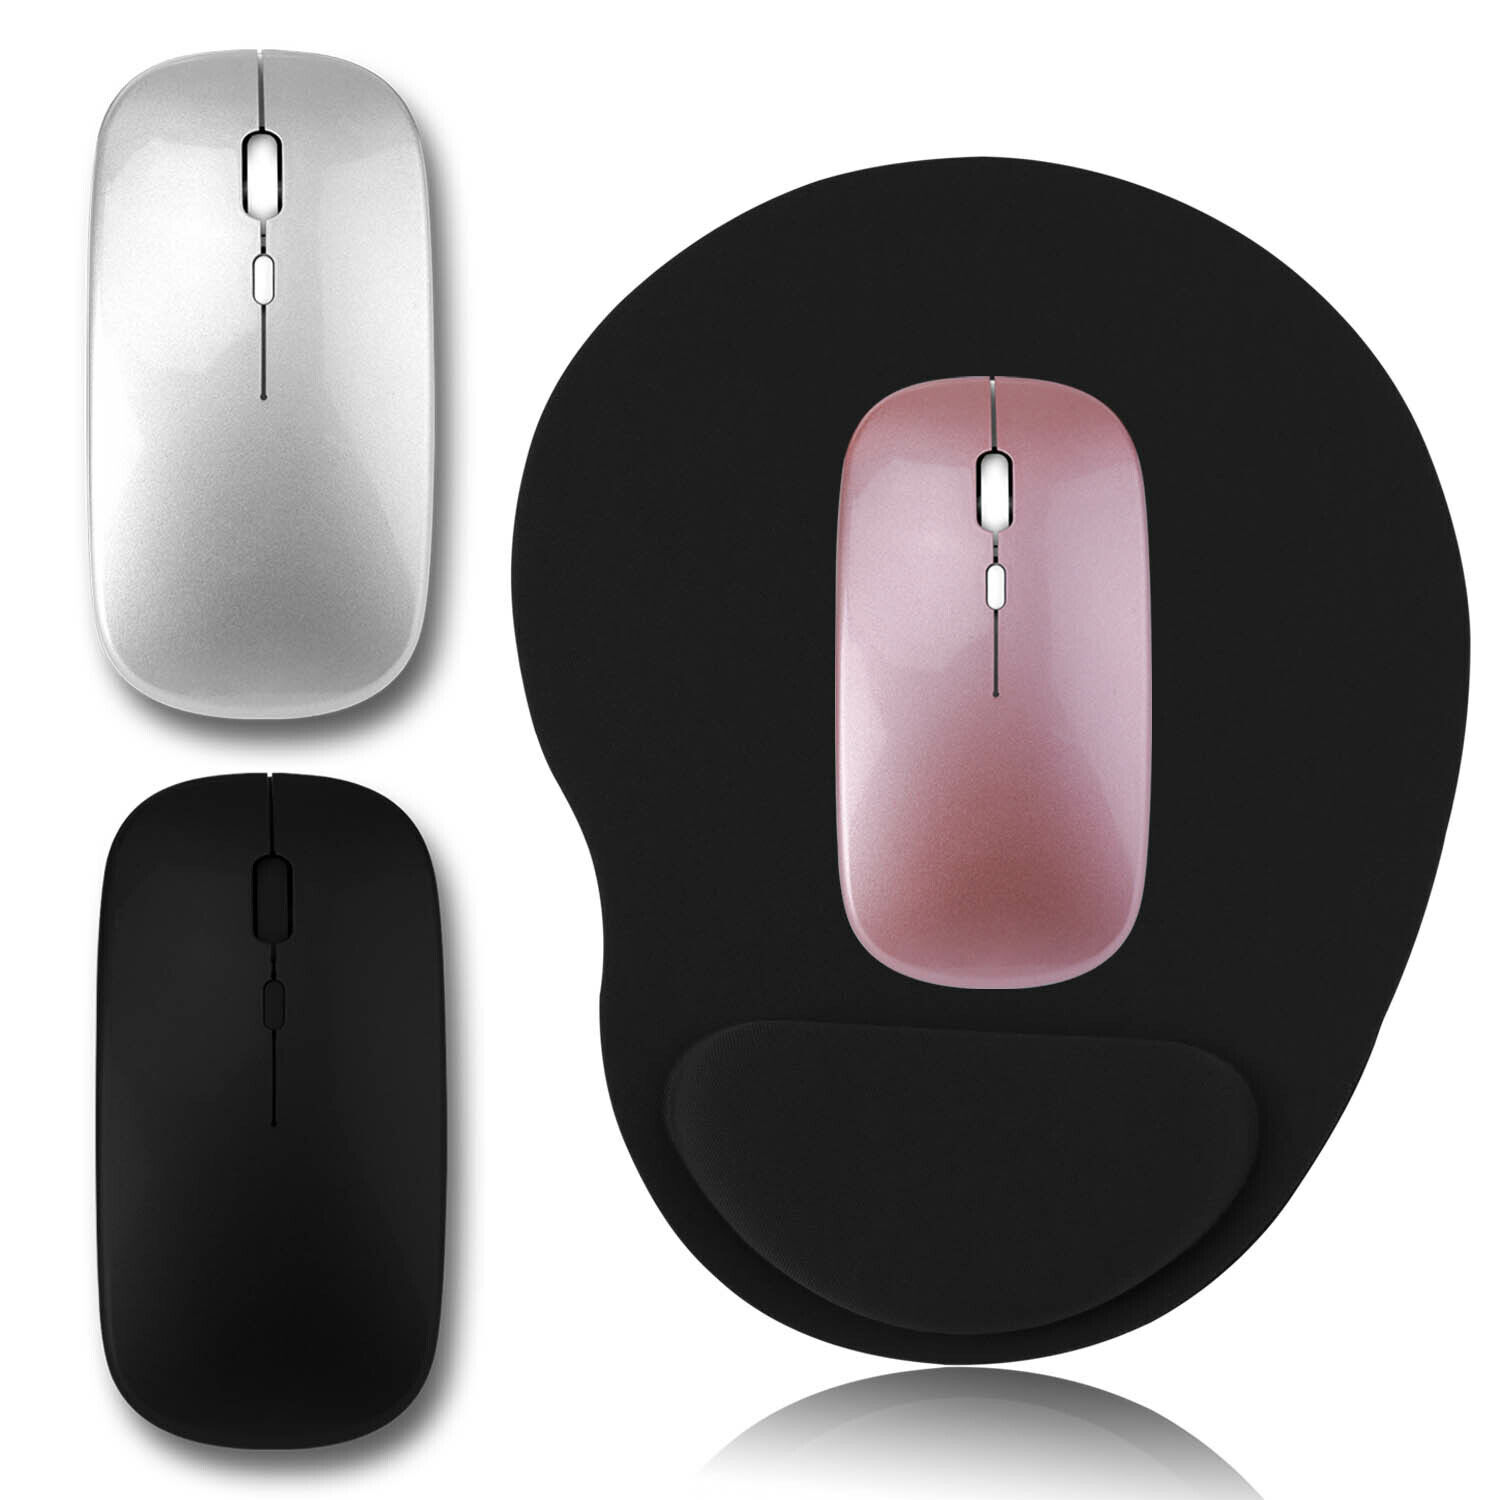 Pink Receiver for Laptop PC Mac Optical Wireless Mouse 2.4GHz Ultra-Thin Wireless Mouse USB Slim Optical Wireless Mouse